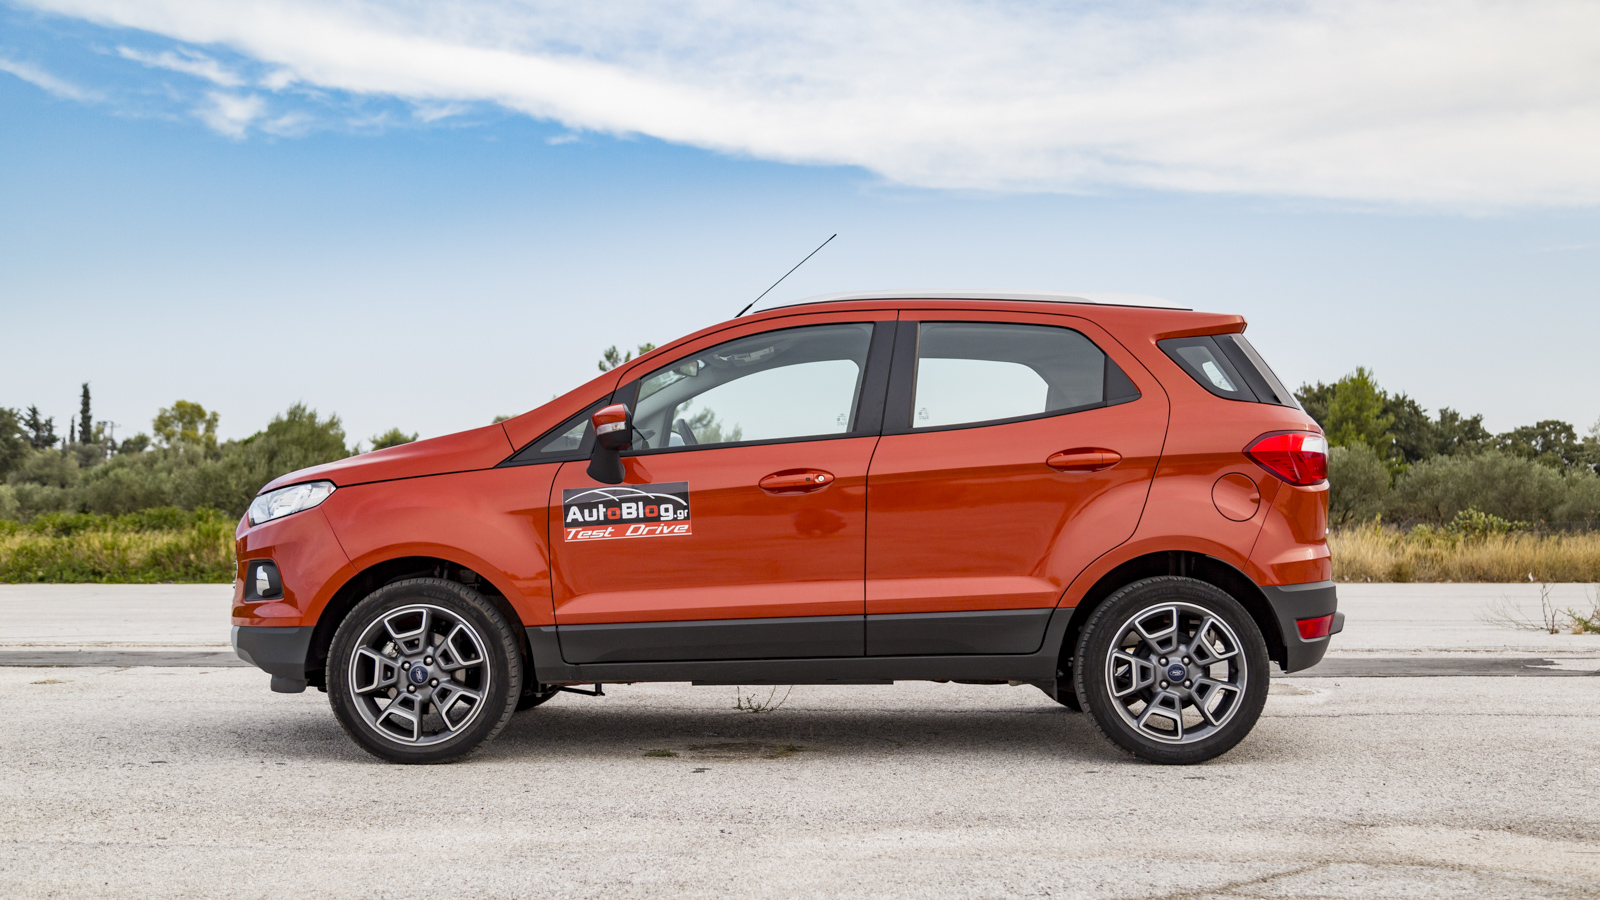 Test_Drive_Ford_EcoSport_20